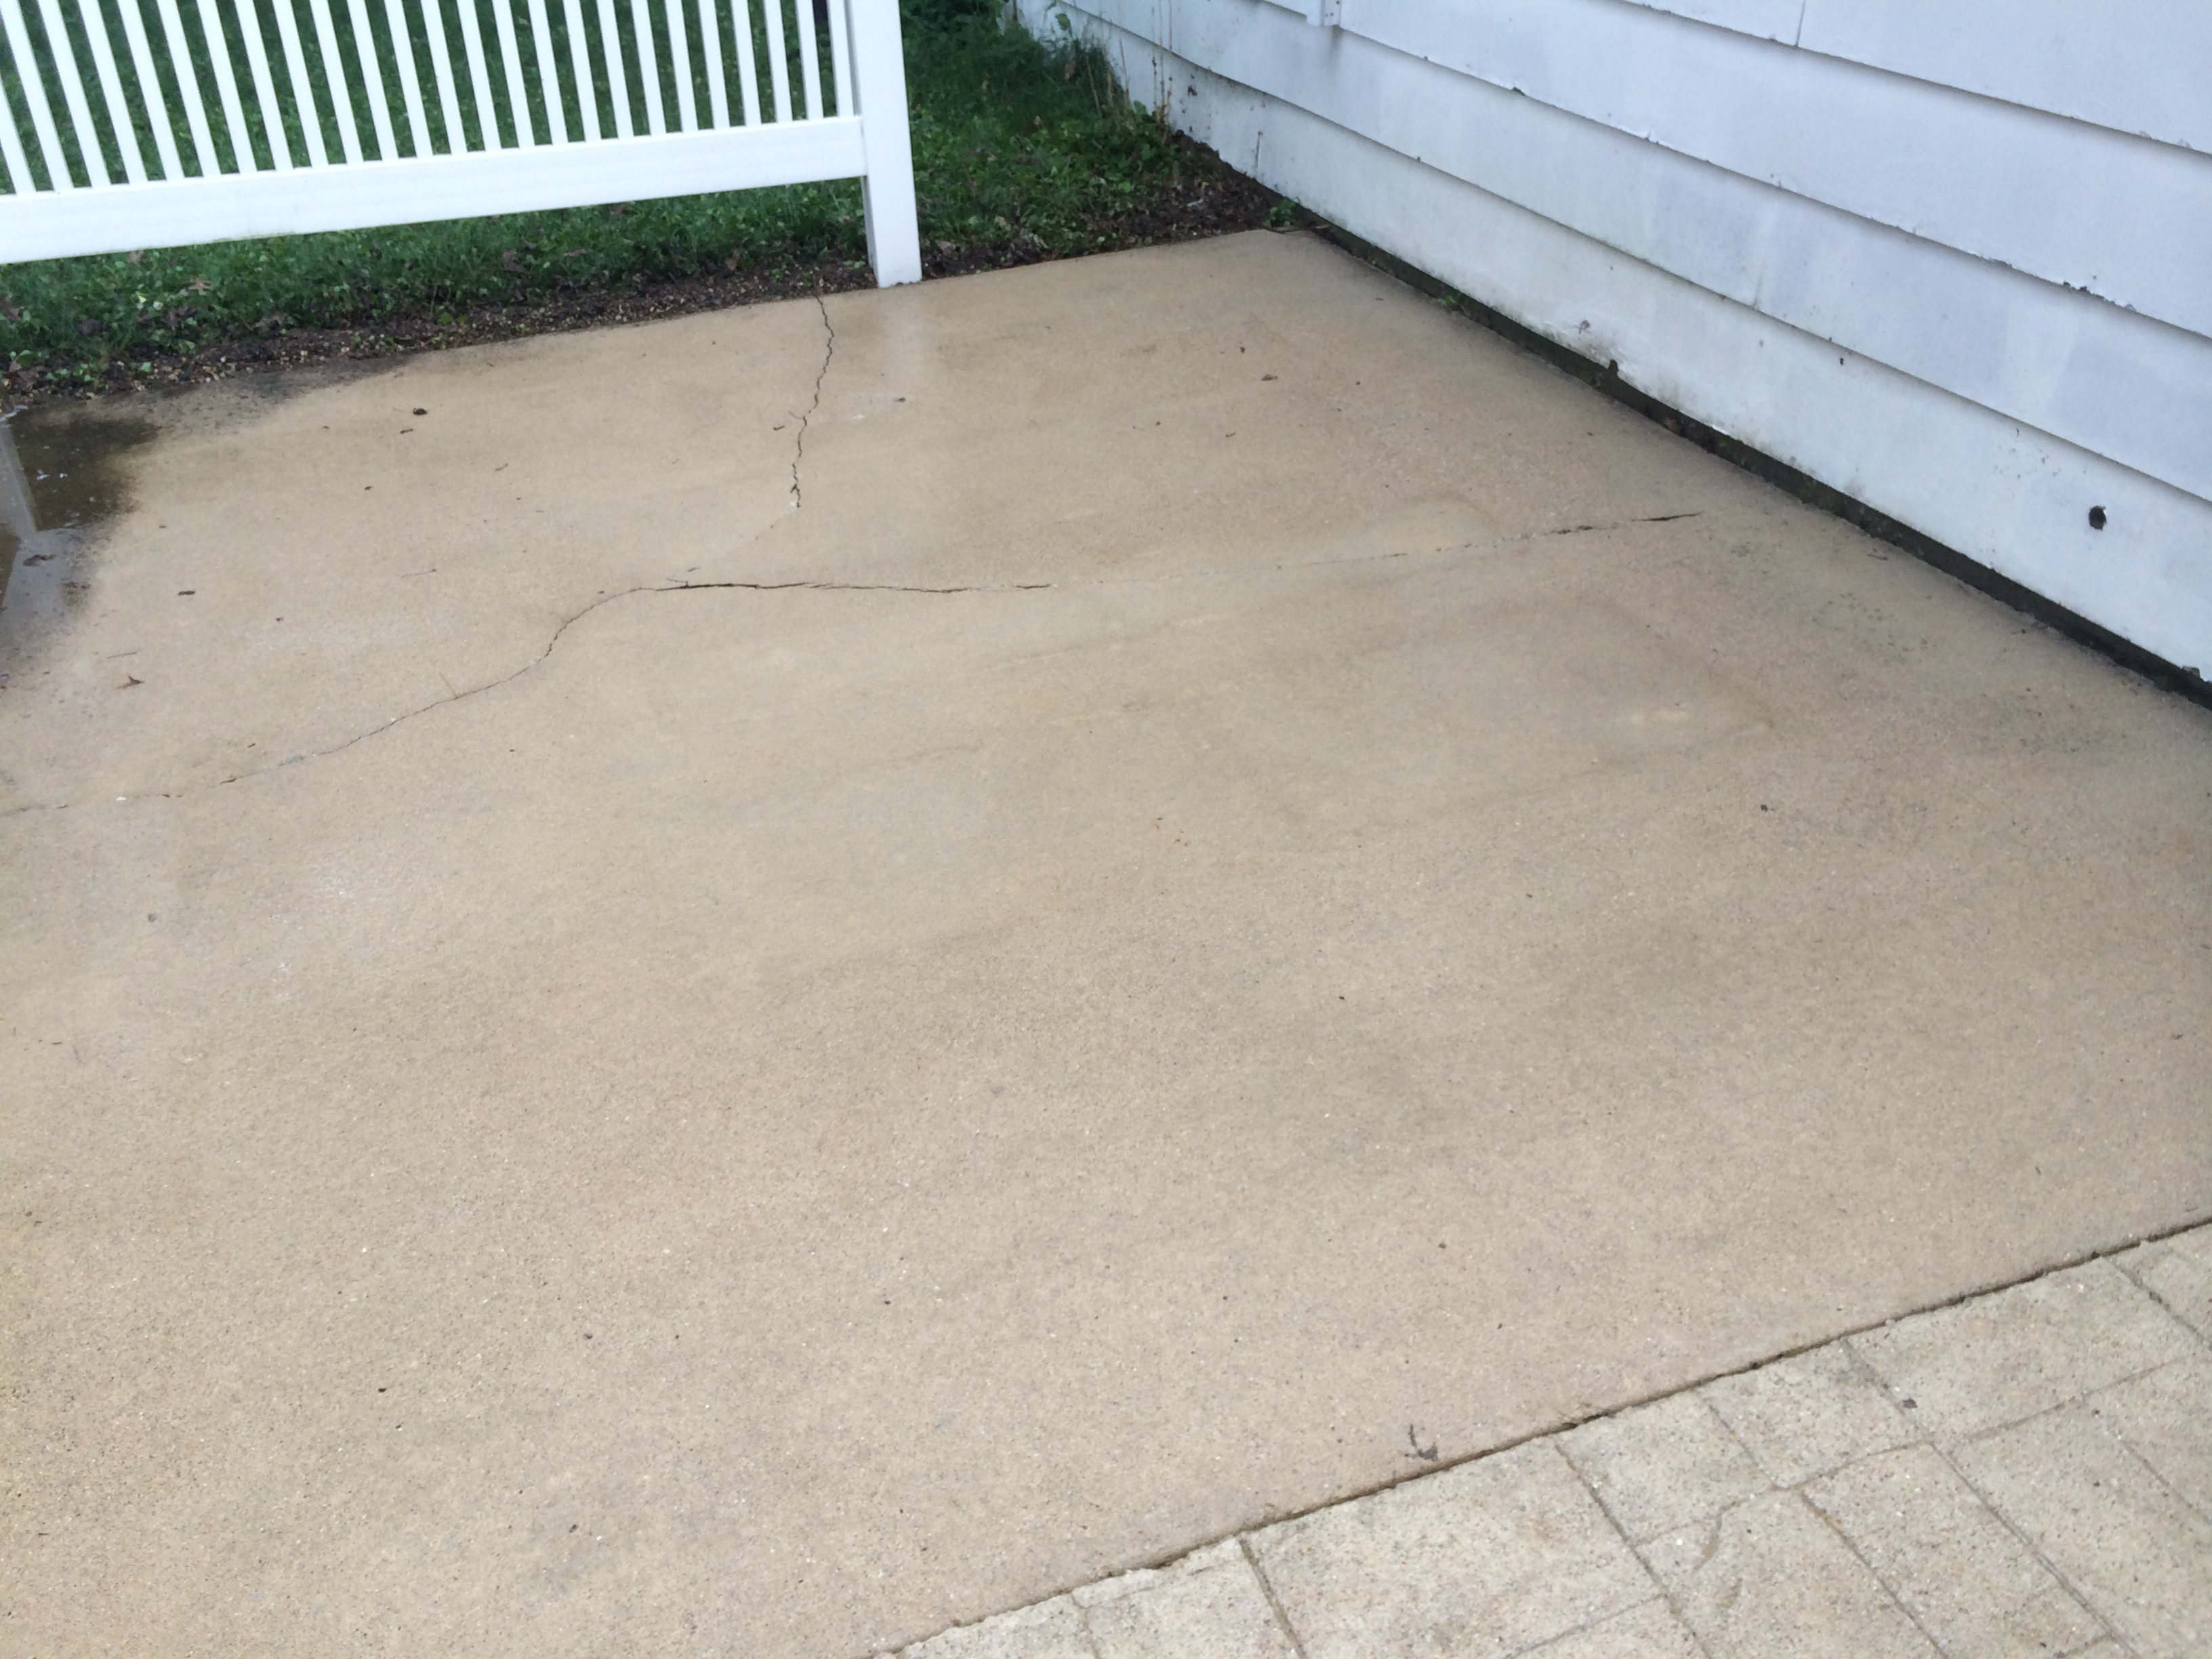 Concrete patio cleaner home design ideas and inspiration for Deck and concrete cleaner